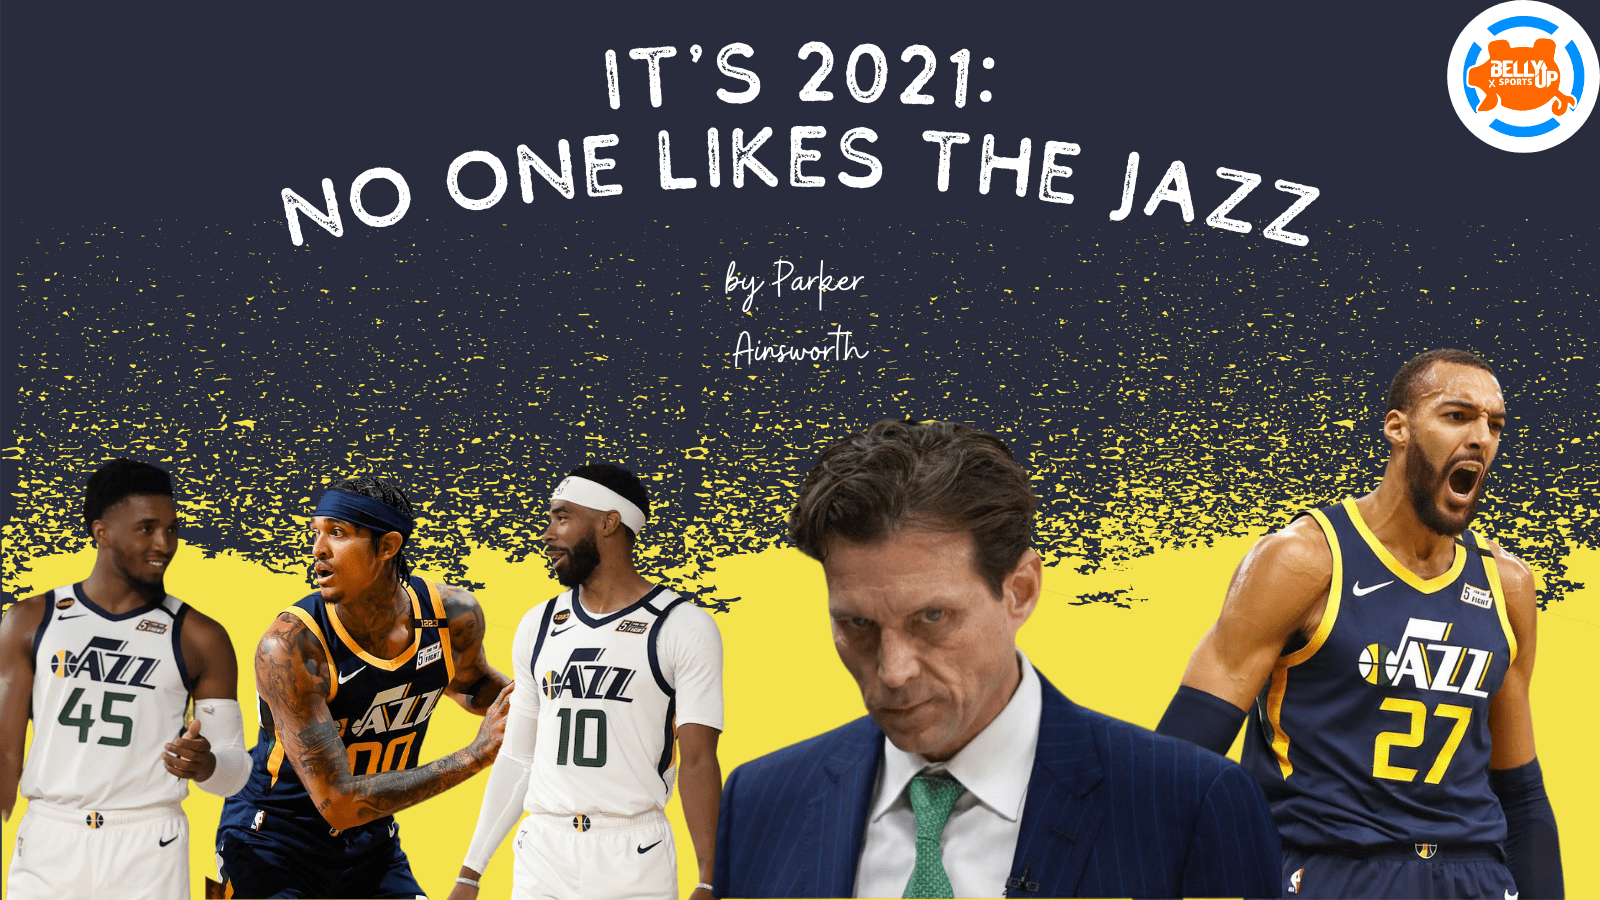 It's 2021: No One Likes The Jazz